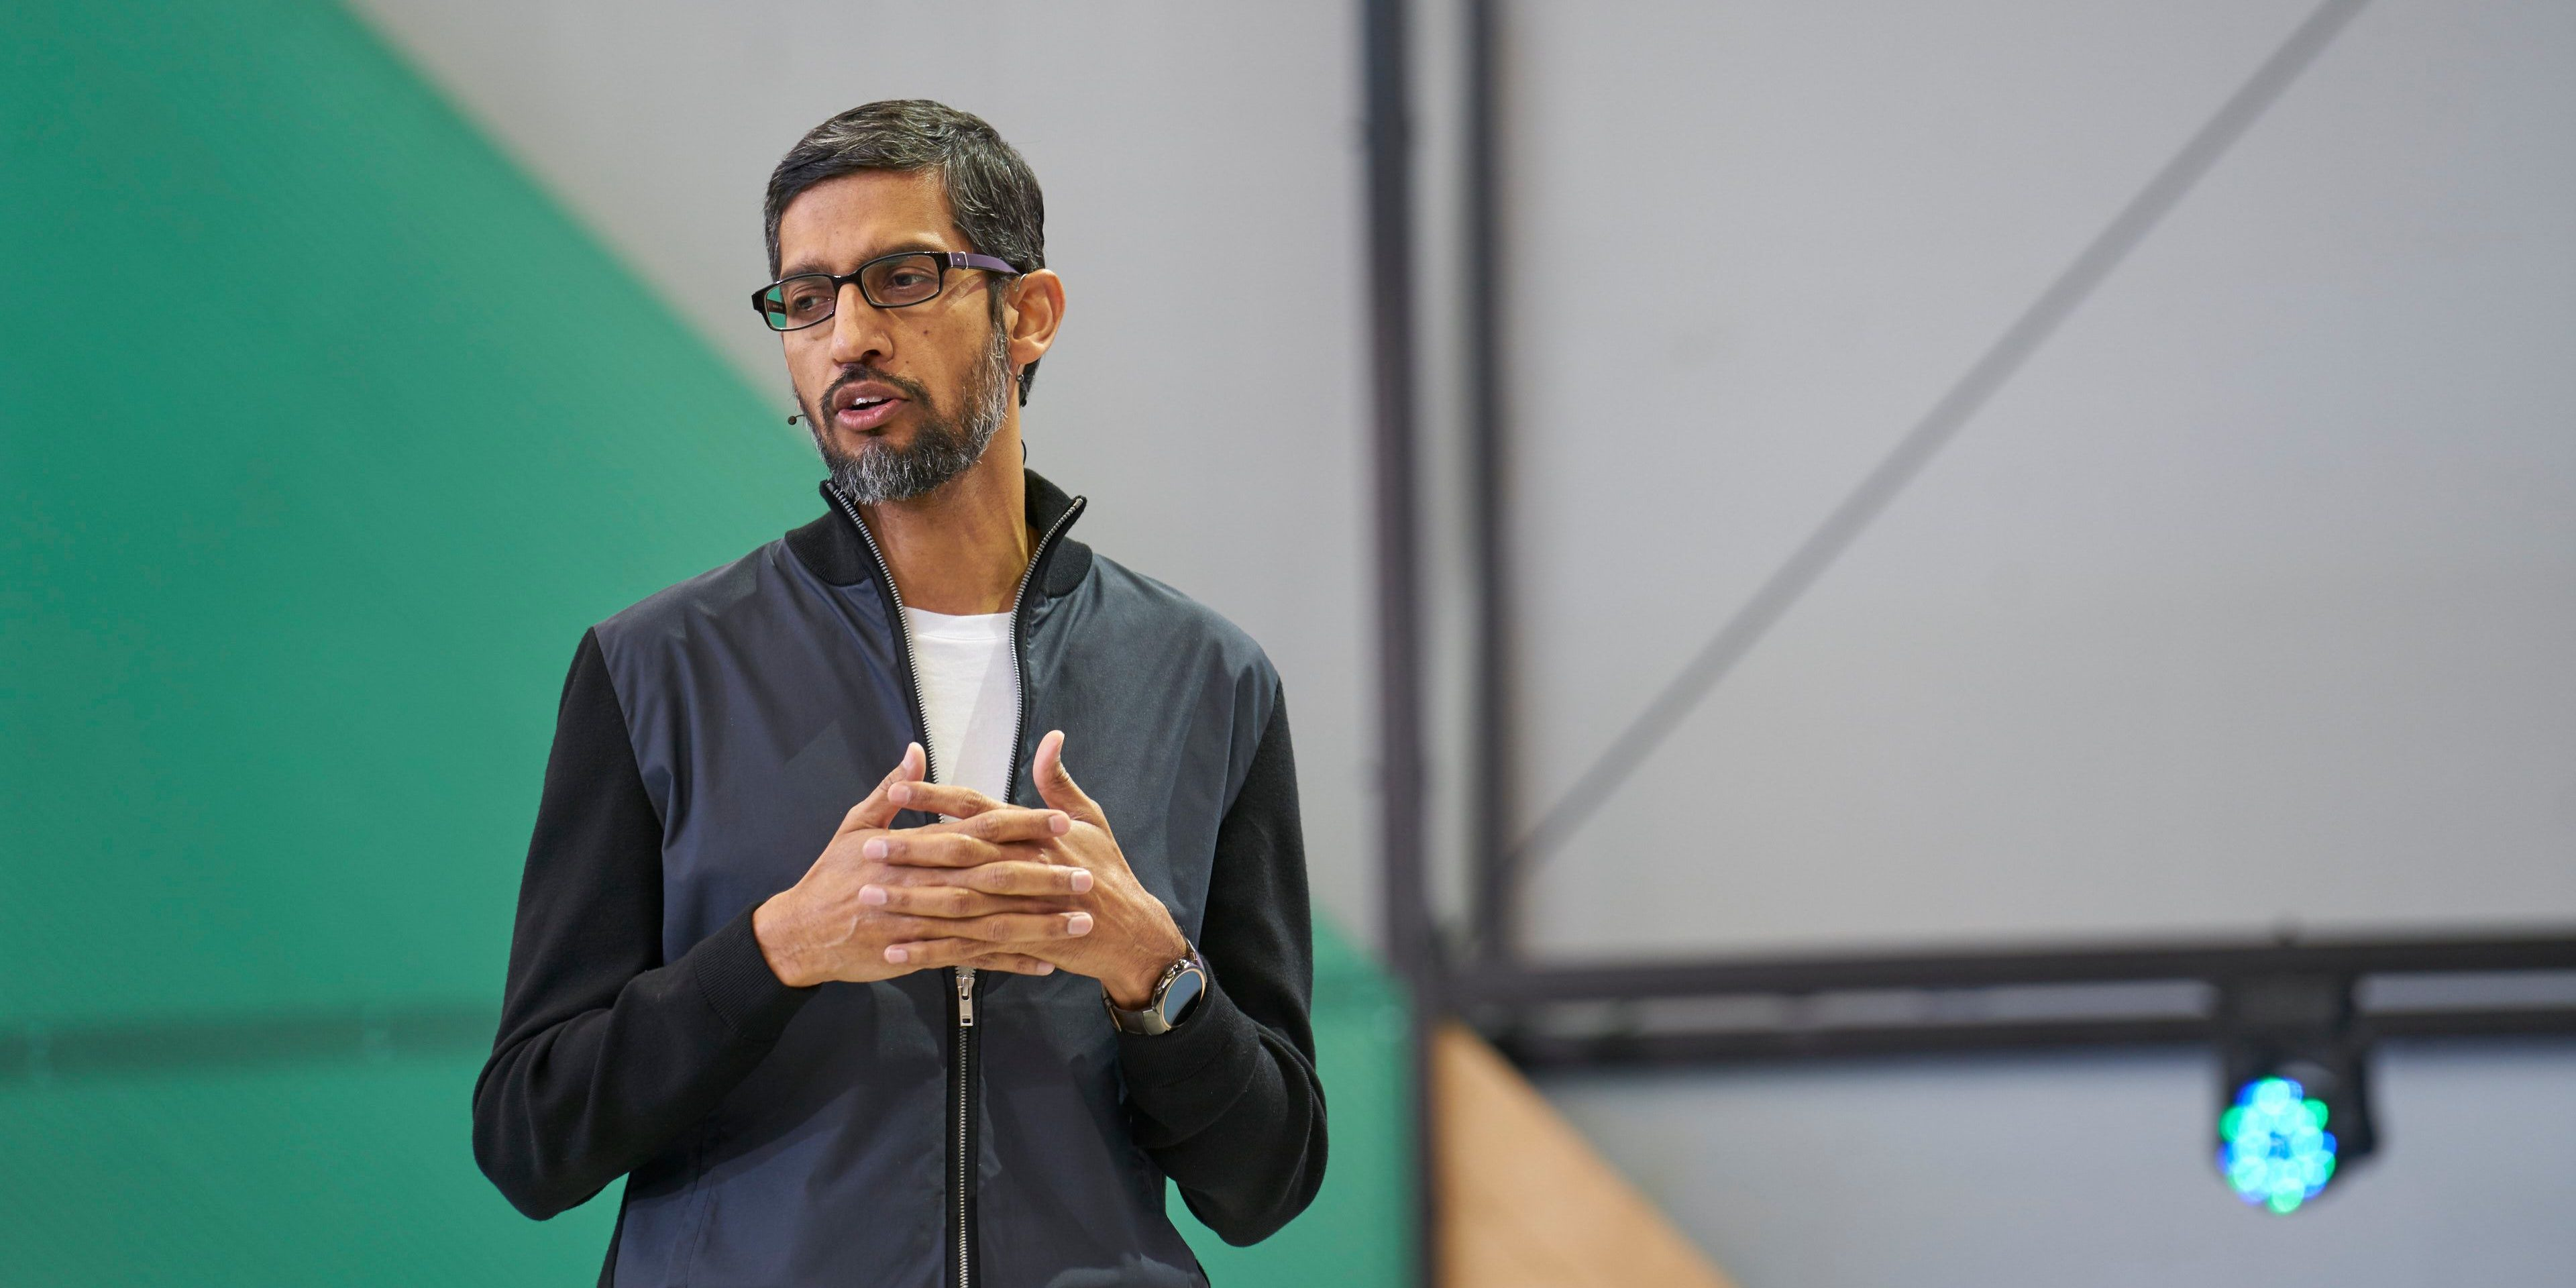 Sundar Pichai talks Pixel, Google hardware, and HTC expertise for other products